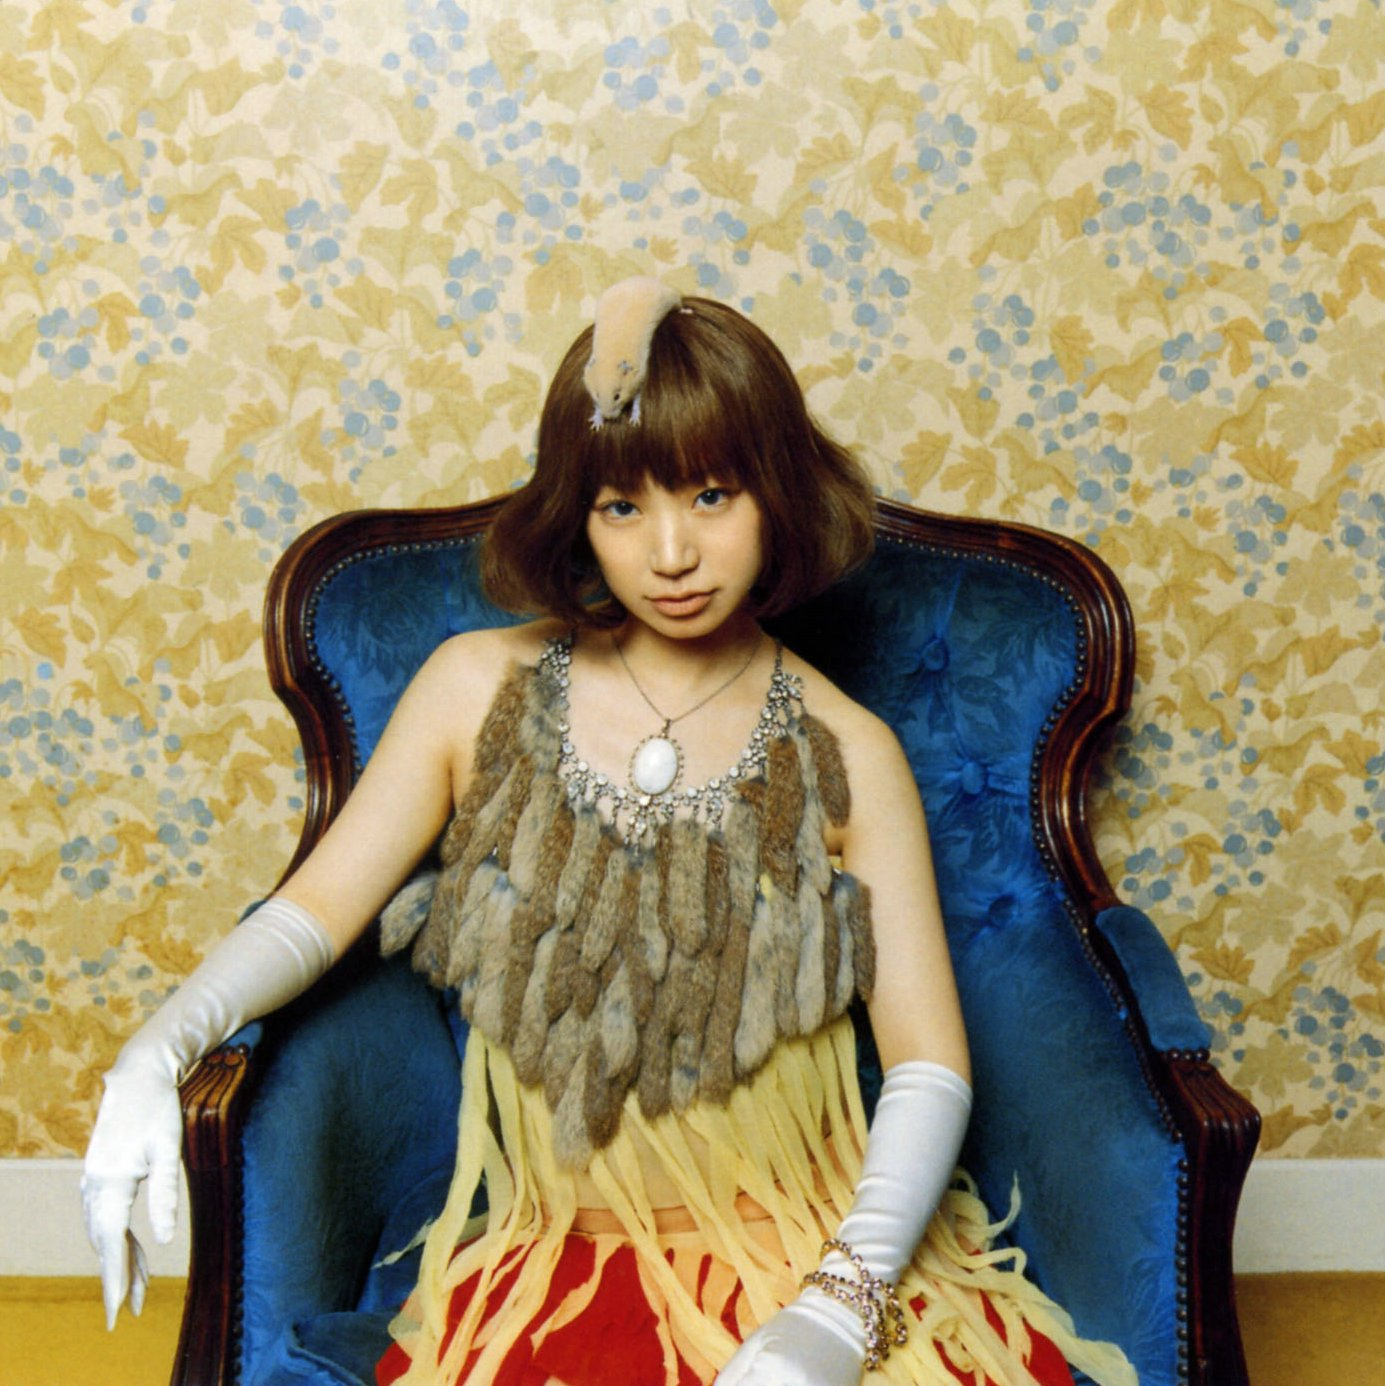 [2006-08-09] Fugainaiya (OP Single) by Yuki